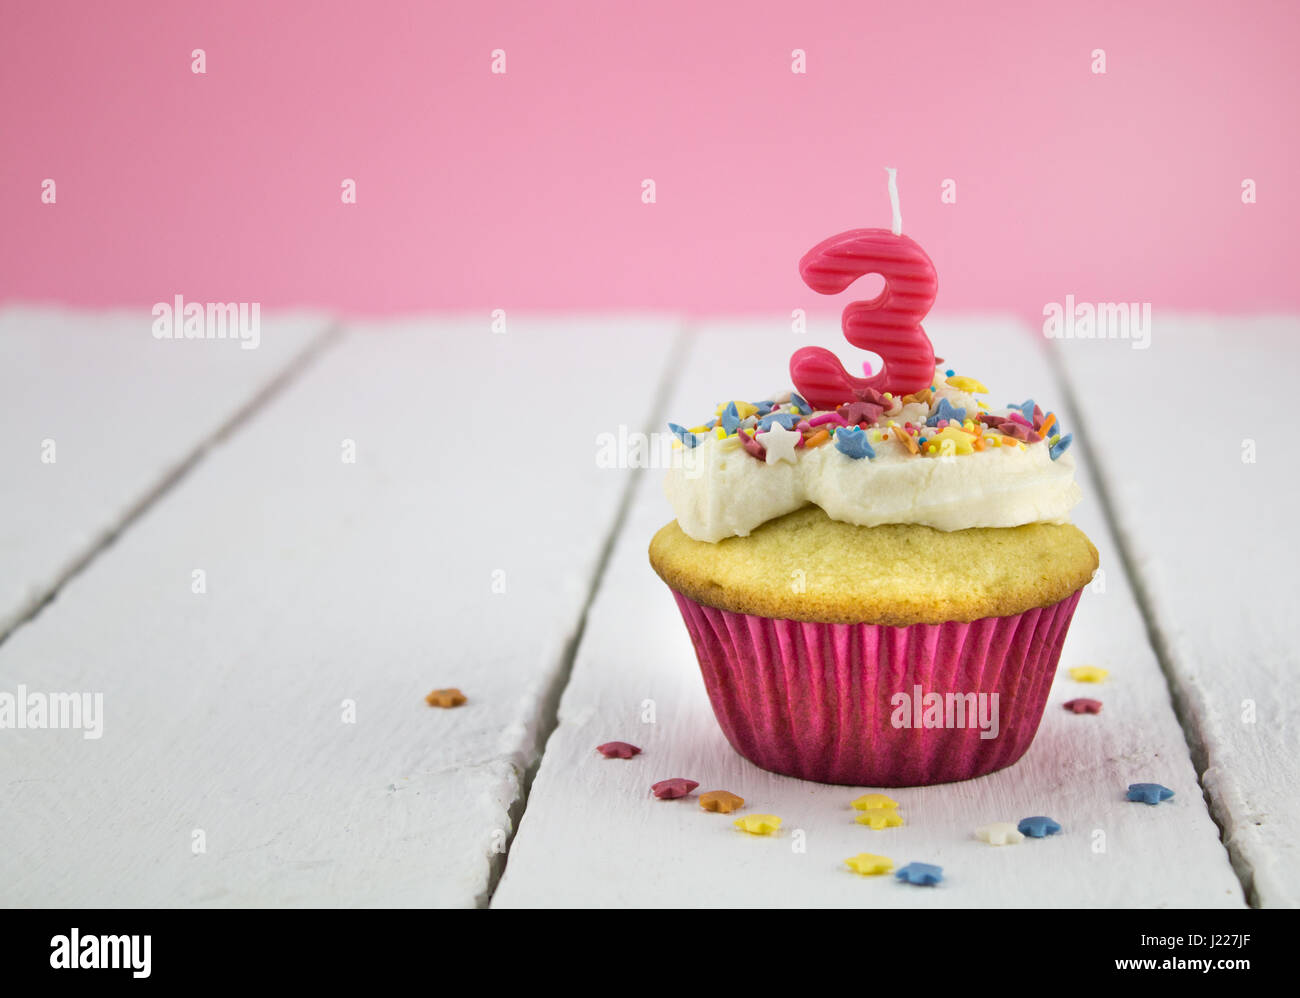 Happy birthday cup cake with star sprinkles and number 3 pink candle on white table with pink background - Birthday - Stock Image